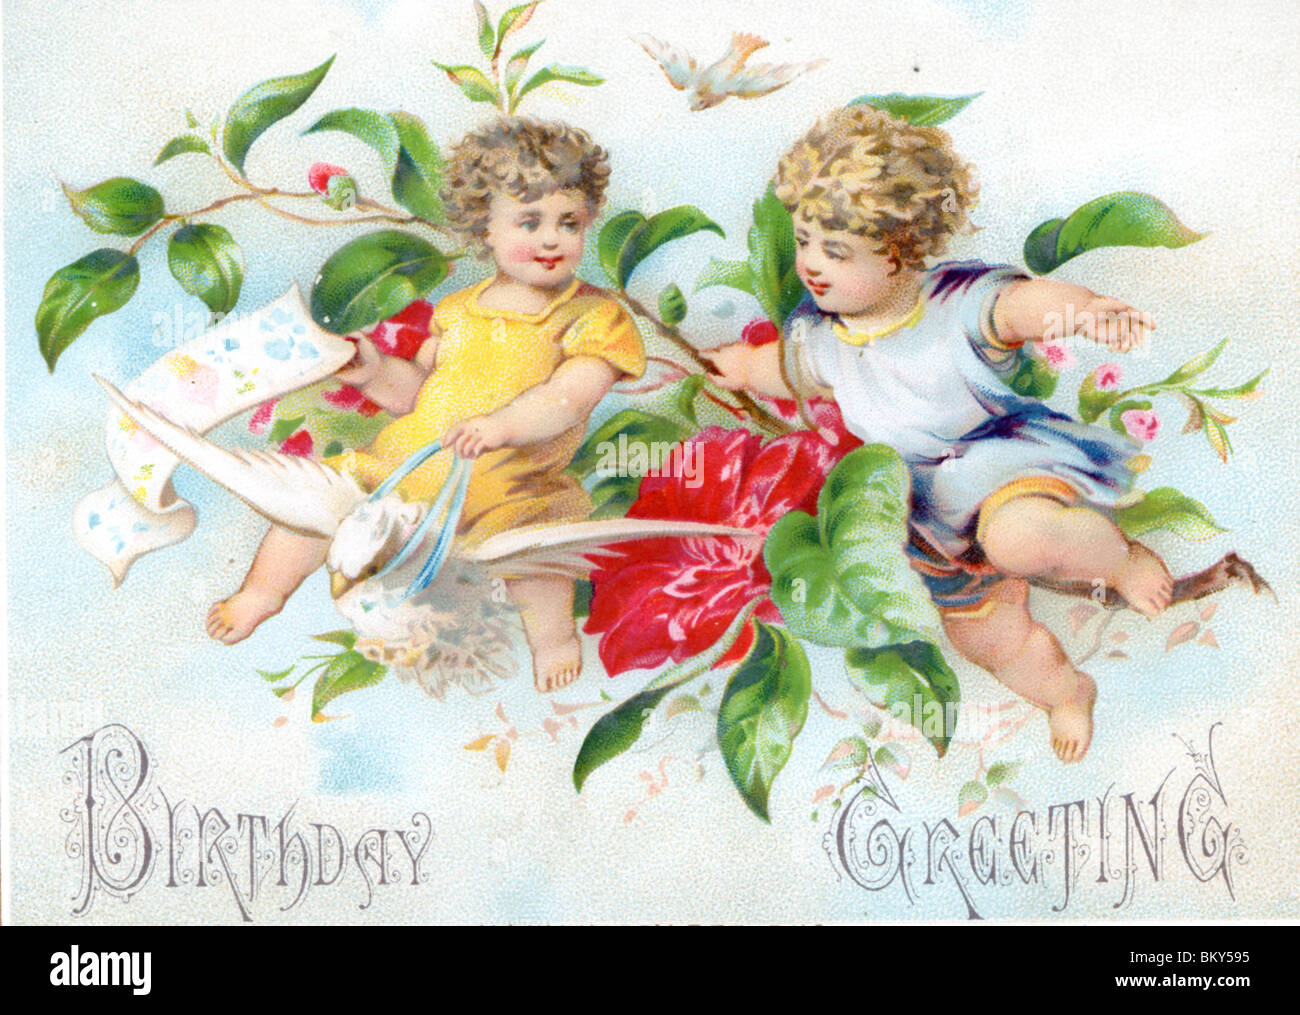 Children Riding On A Dove Bringing Birthday Greetings Stock Photo